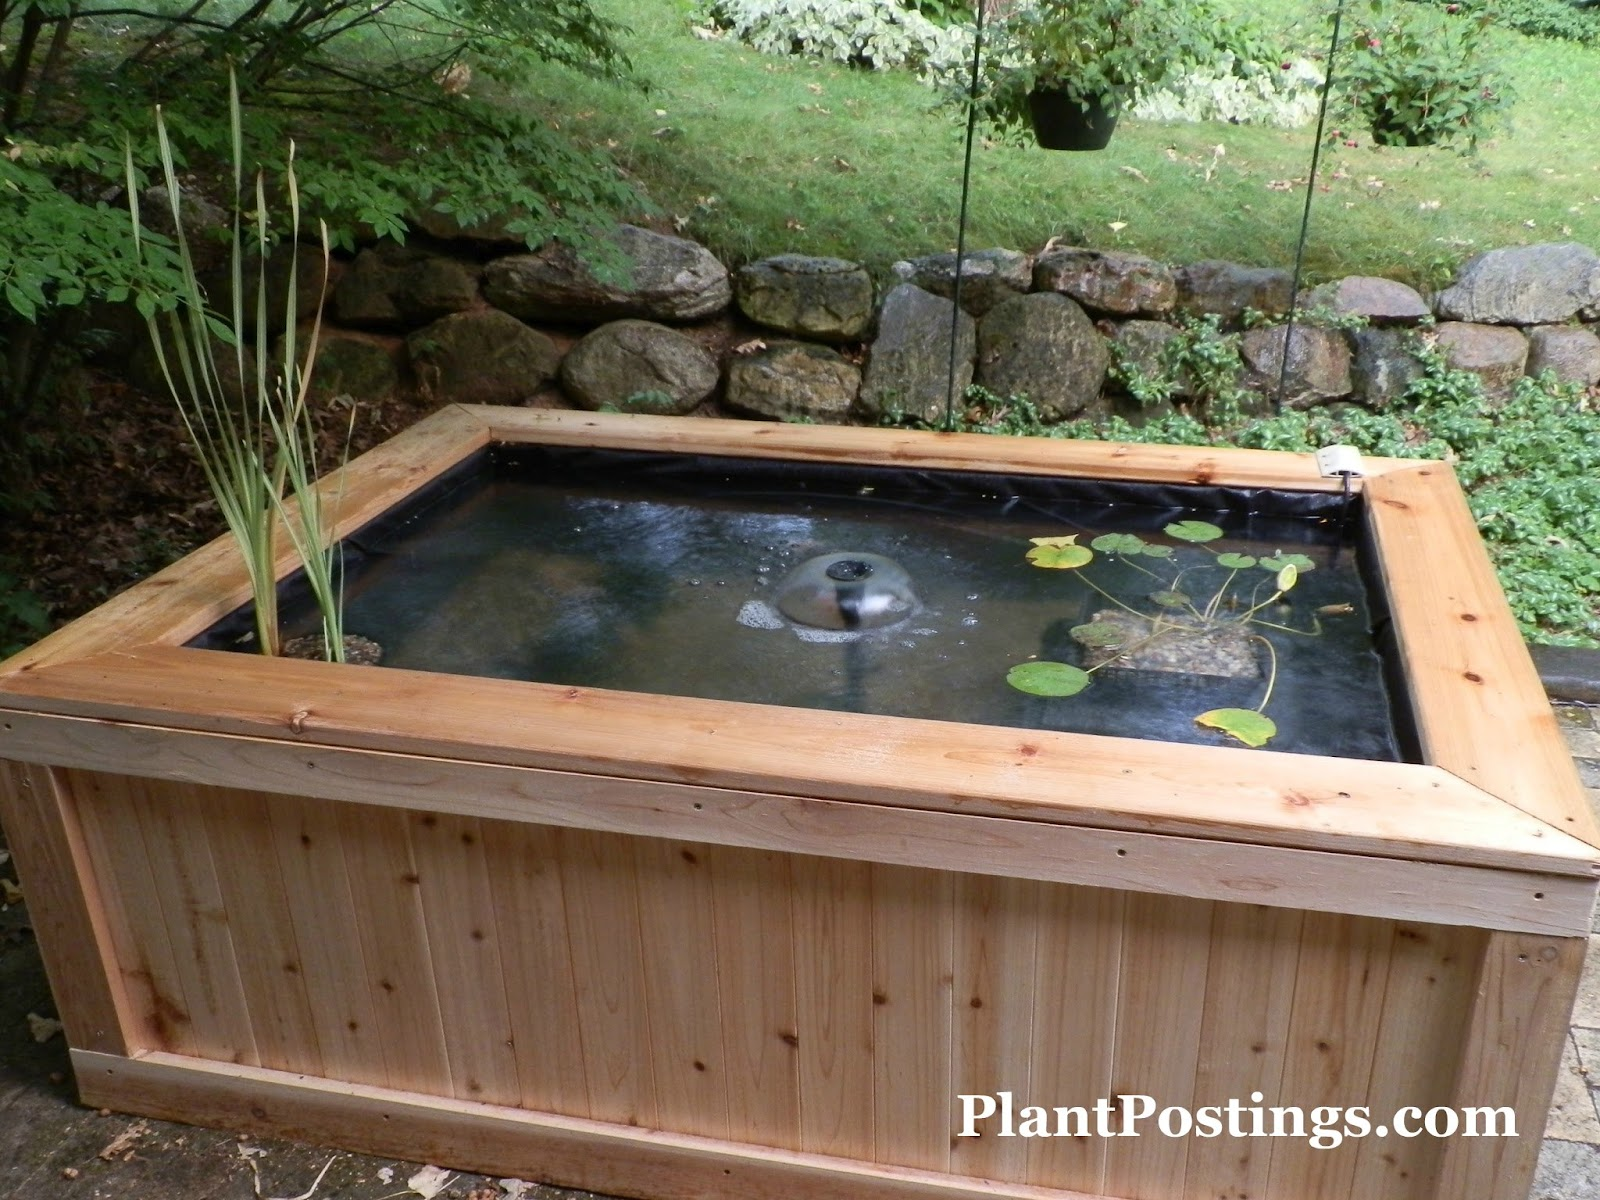 Plantpostings how to make an above ground pond Making a pond